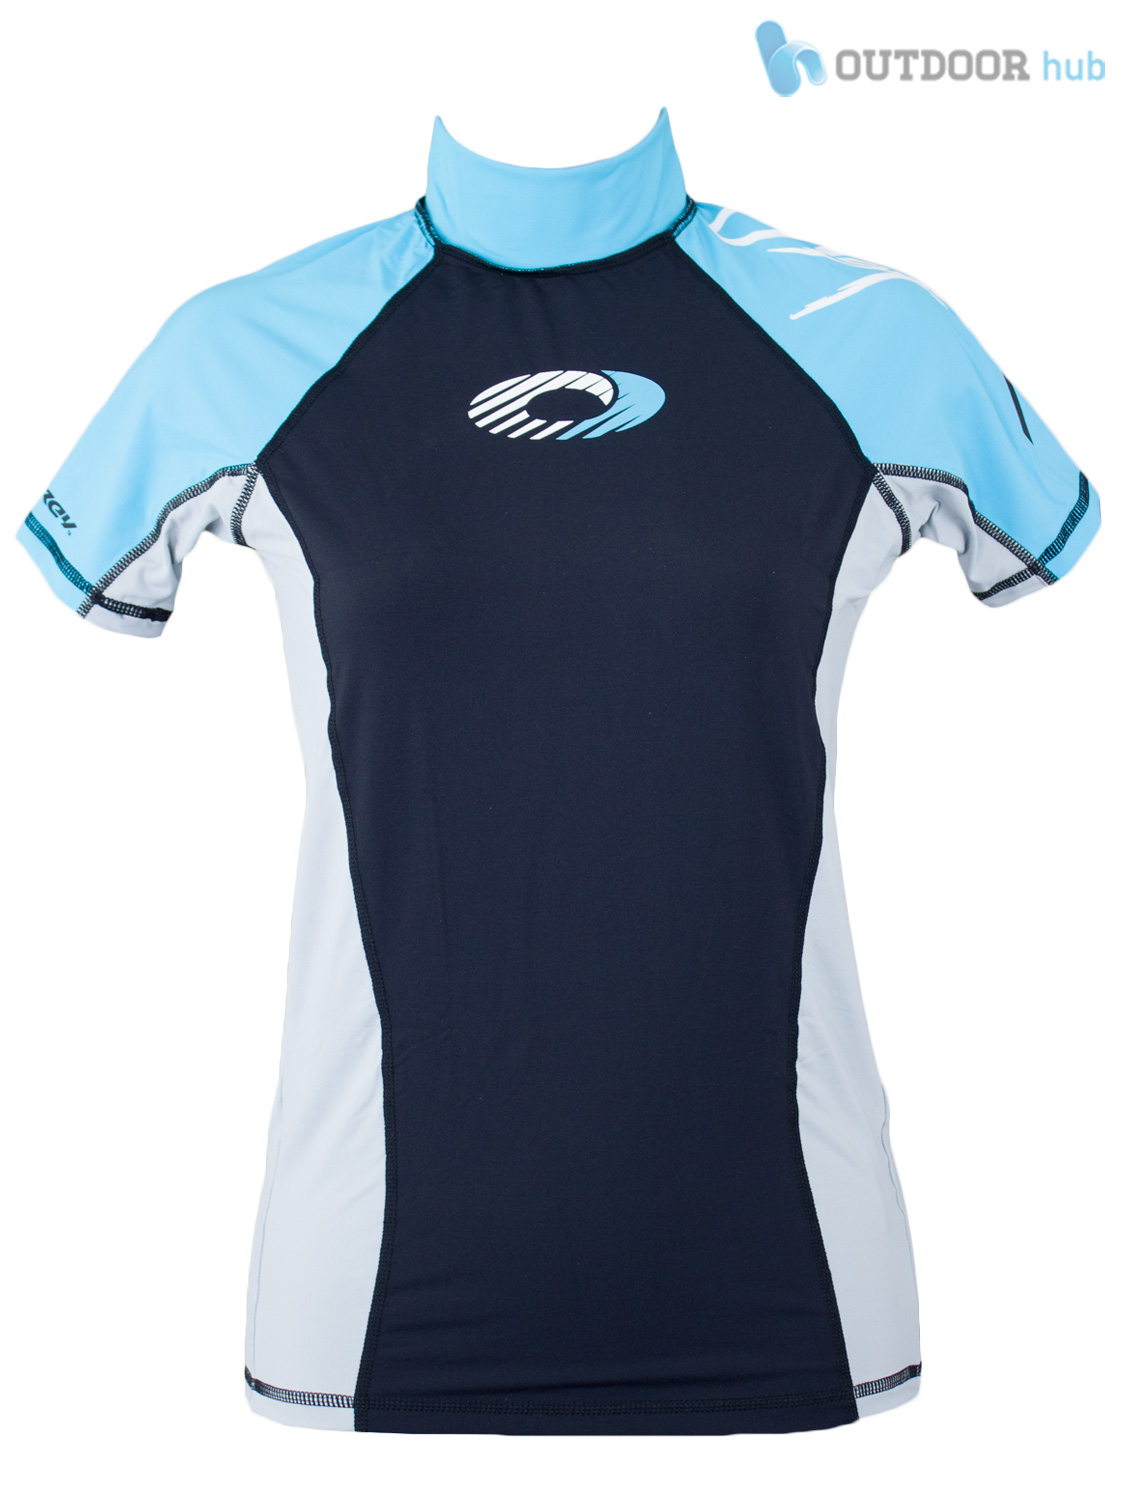 Osprey-Ladies-Short-Sleeve-Rash-Vest-Womens-Surf-T-Shirt-UV-50-Protection-Guard thumbnail 10